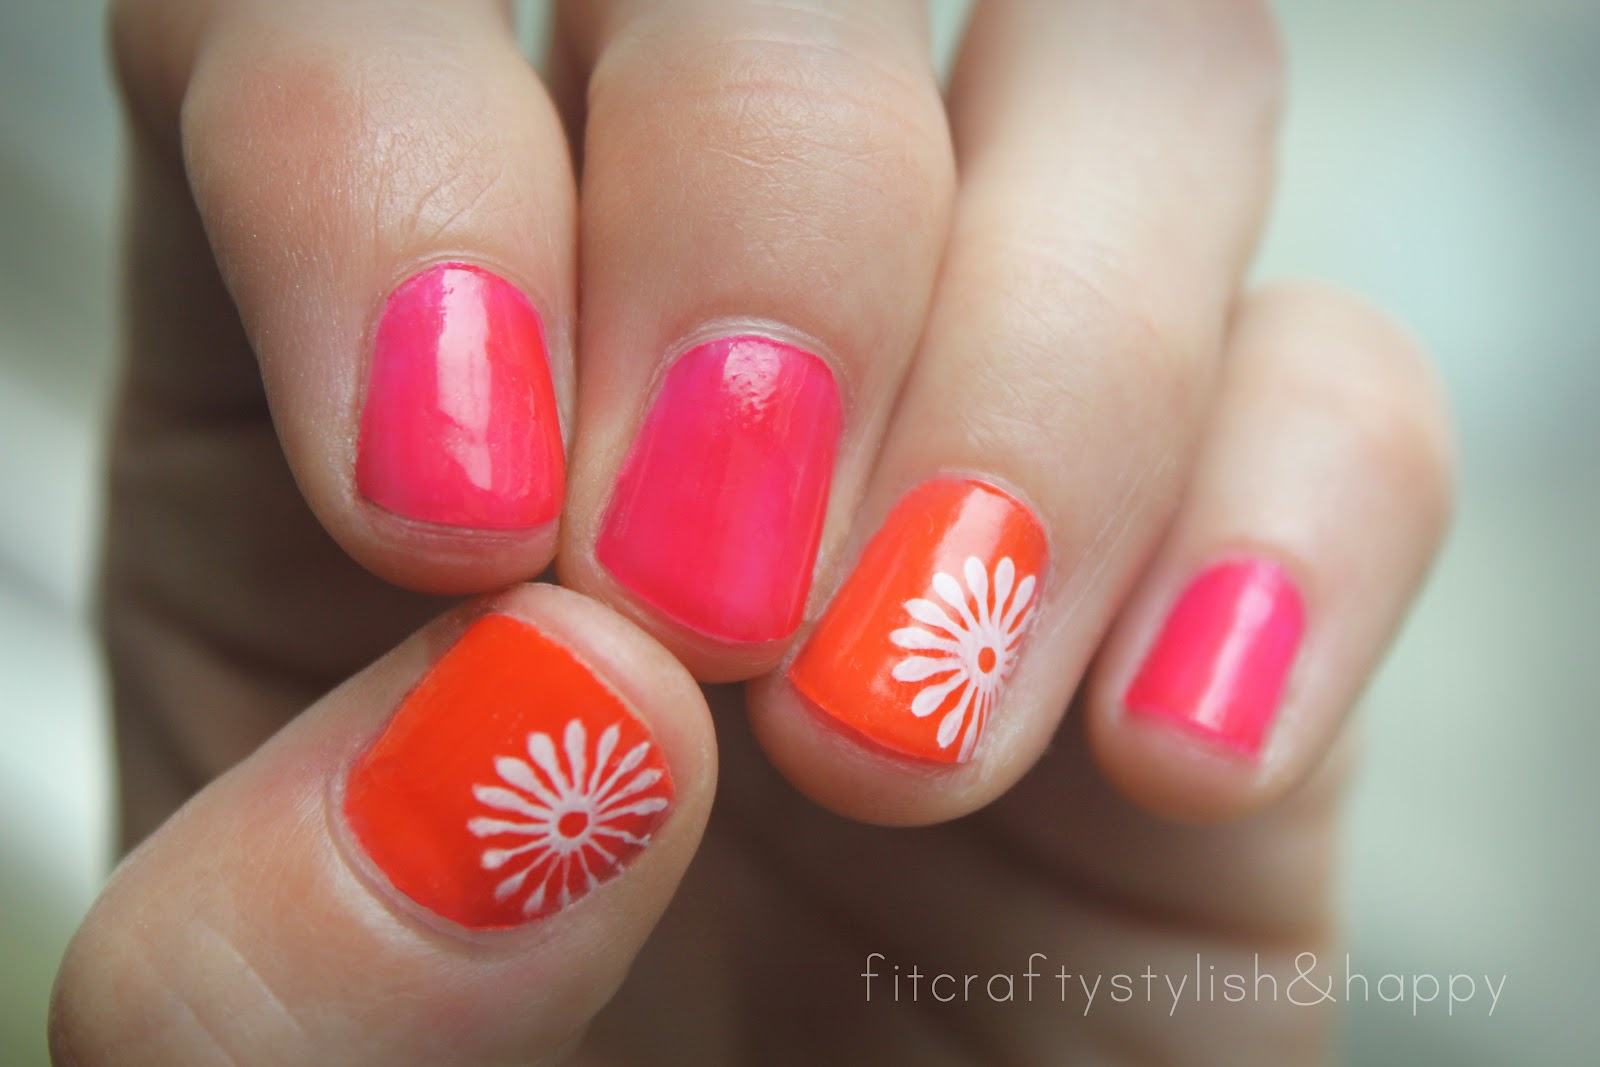 Summer Nail Designs - Pccala